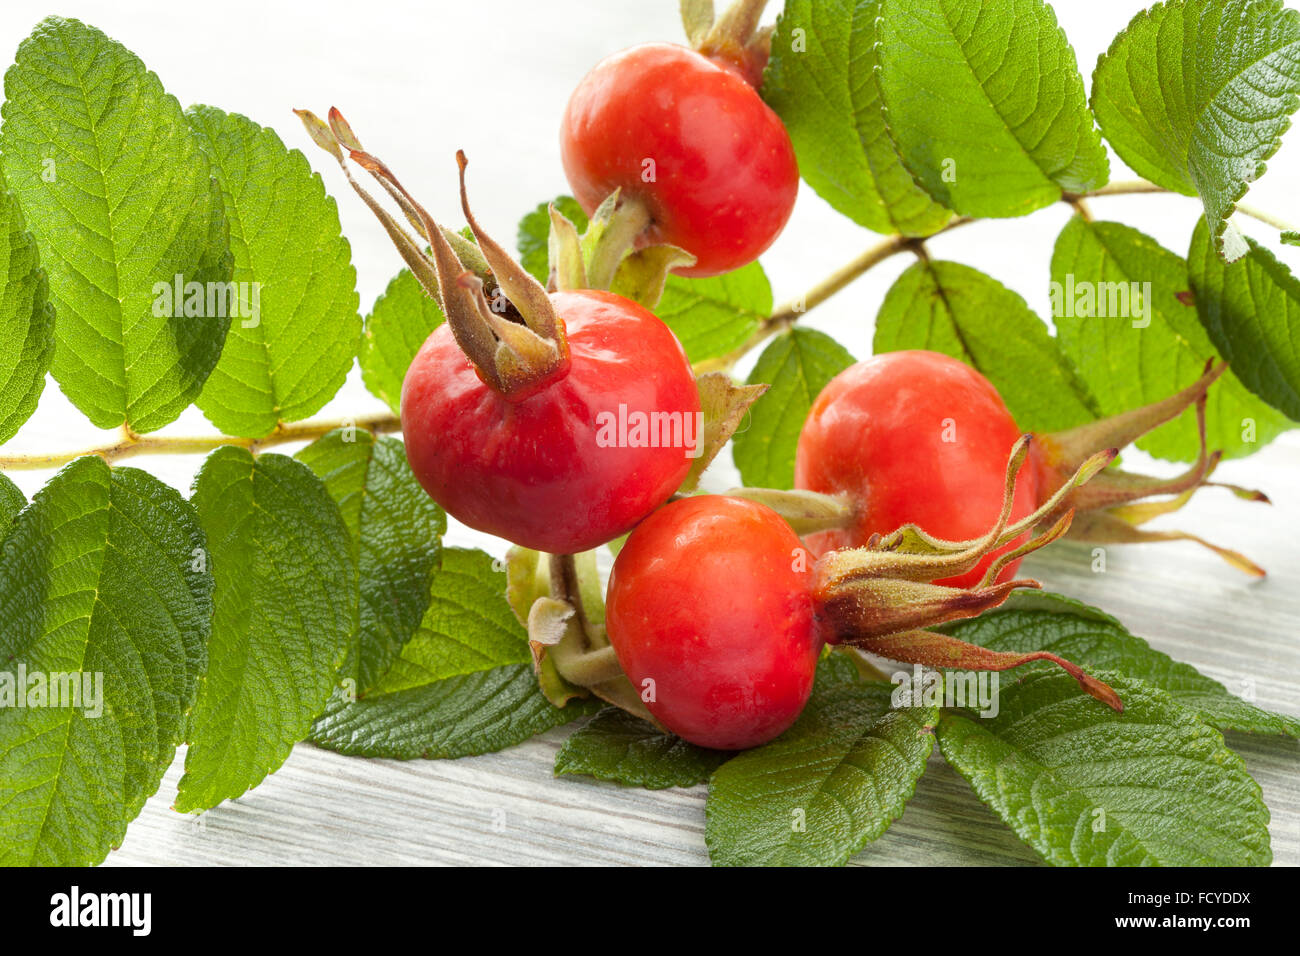 Twig of rose hips and leaves - Stock Image